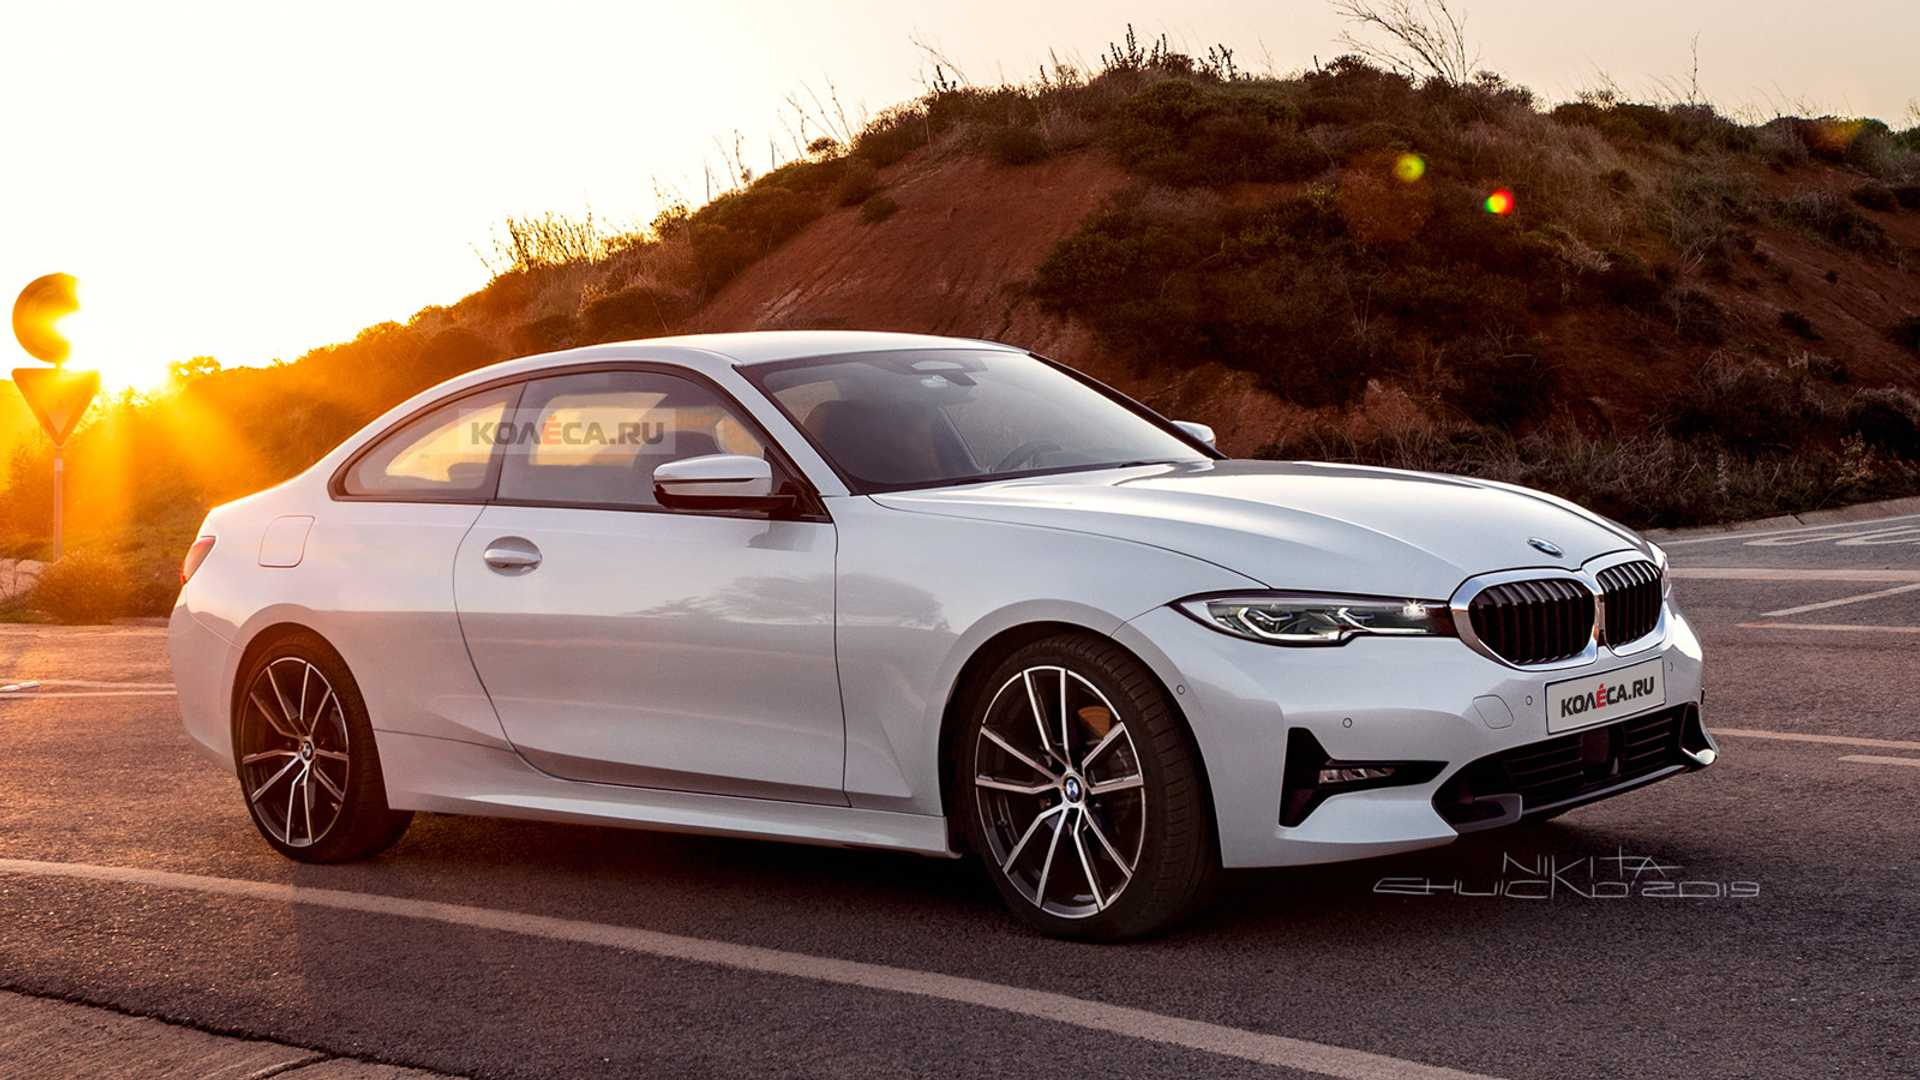 26 All New 2020 Bmw 4 Series Release Date Images